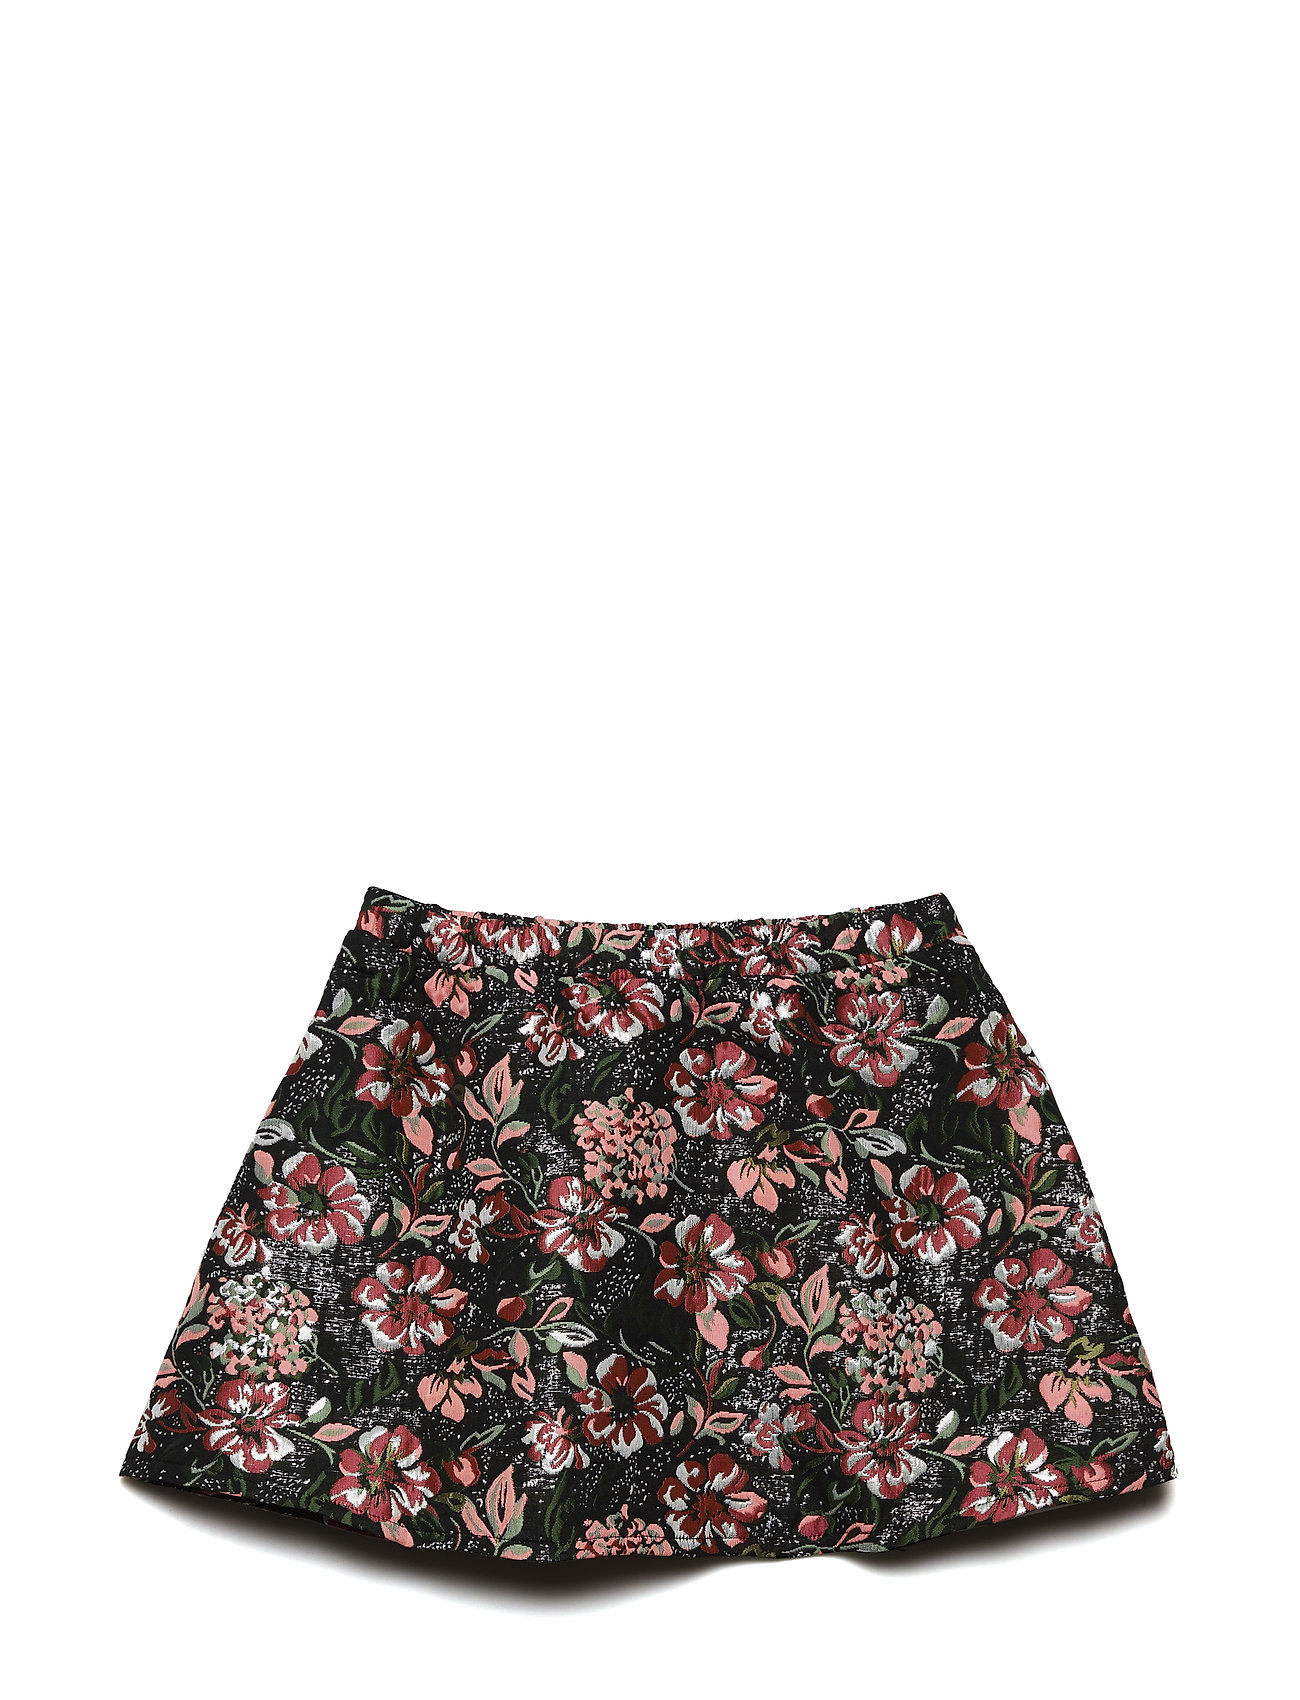 Petit by Sofie Schnoor Skirt - BLK FLOWER